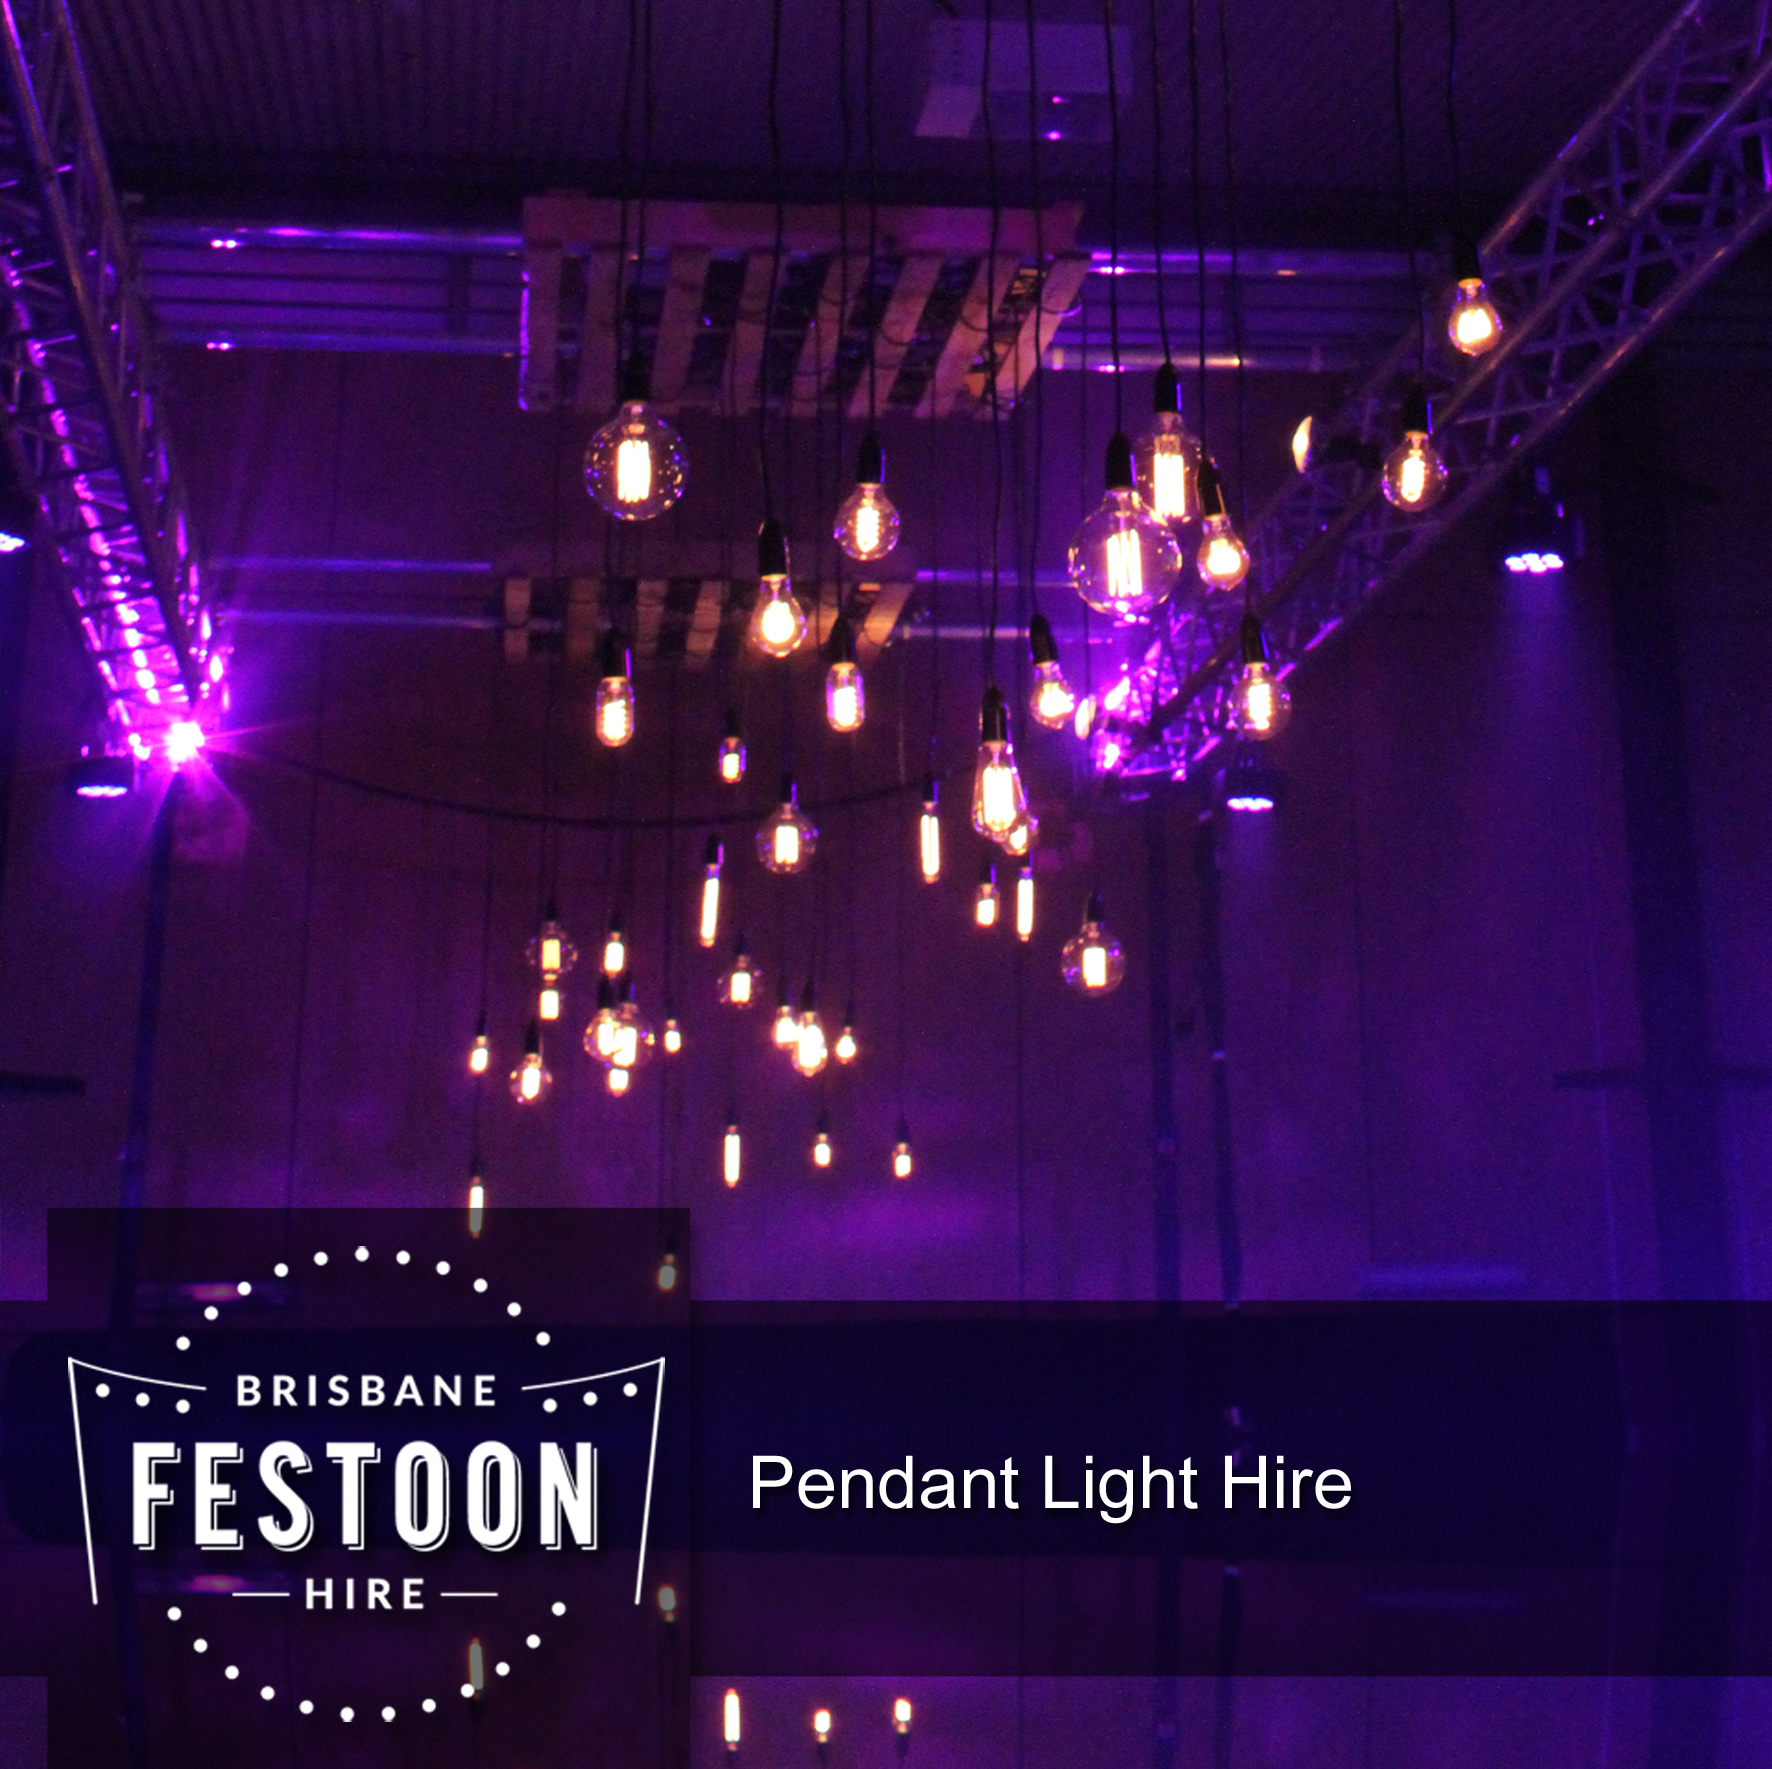 Brisbane Festoon Hire - Pendant Light Hire 3.jpg